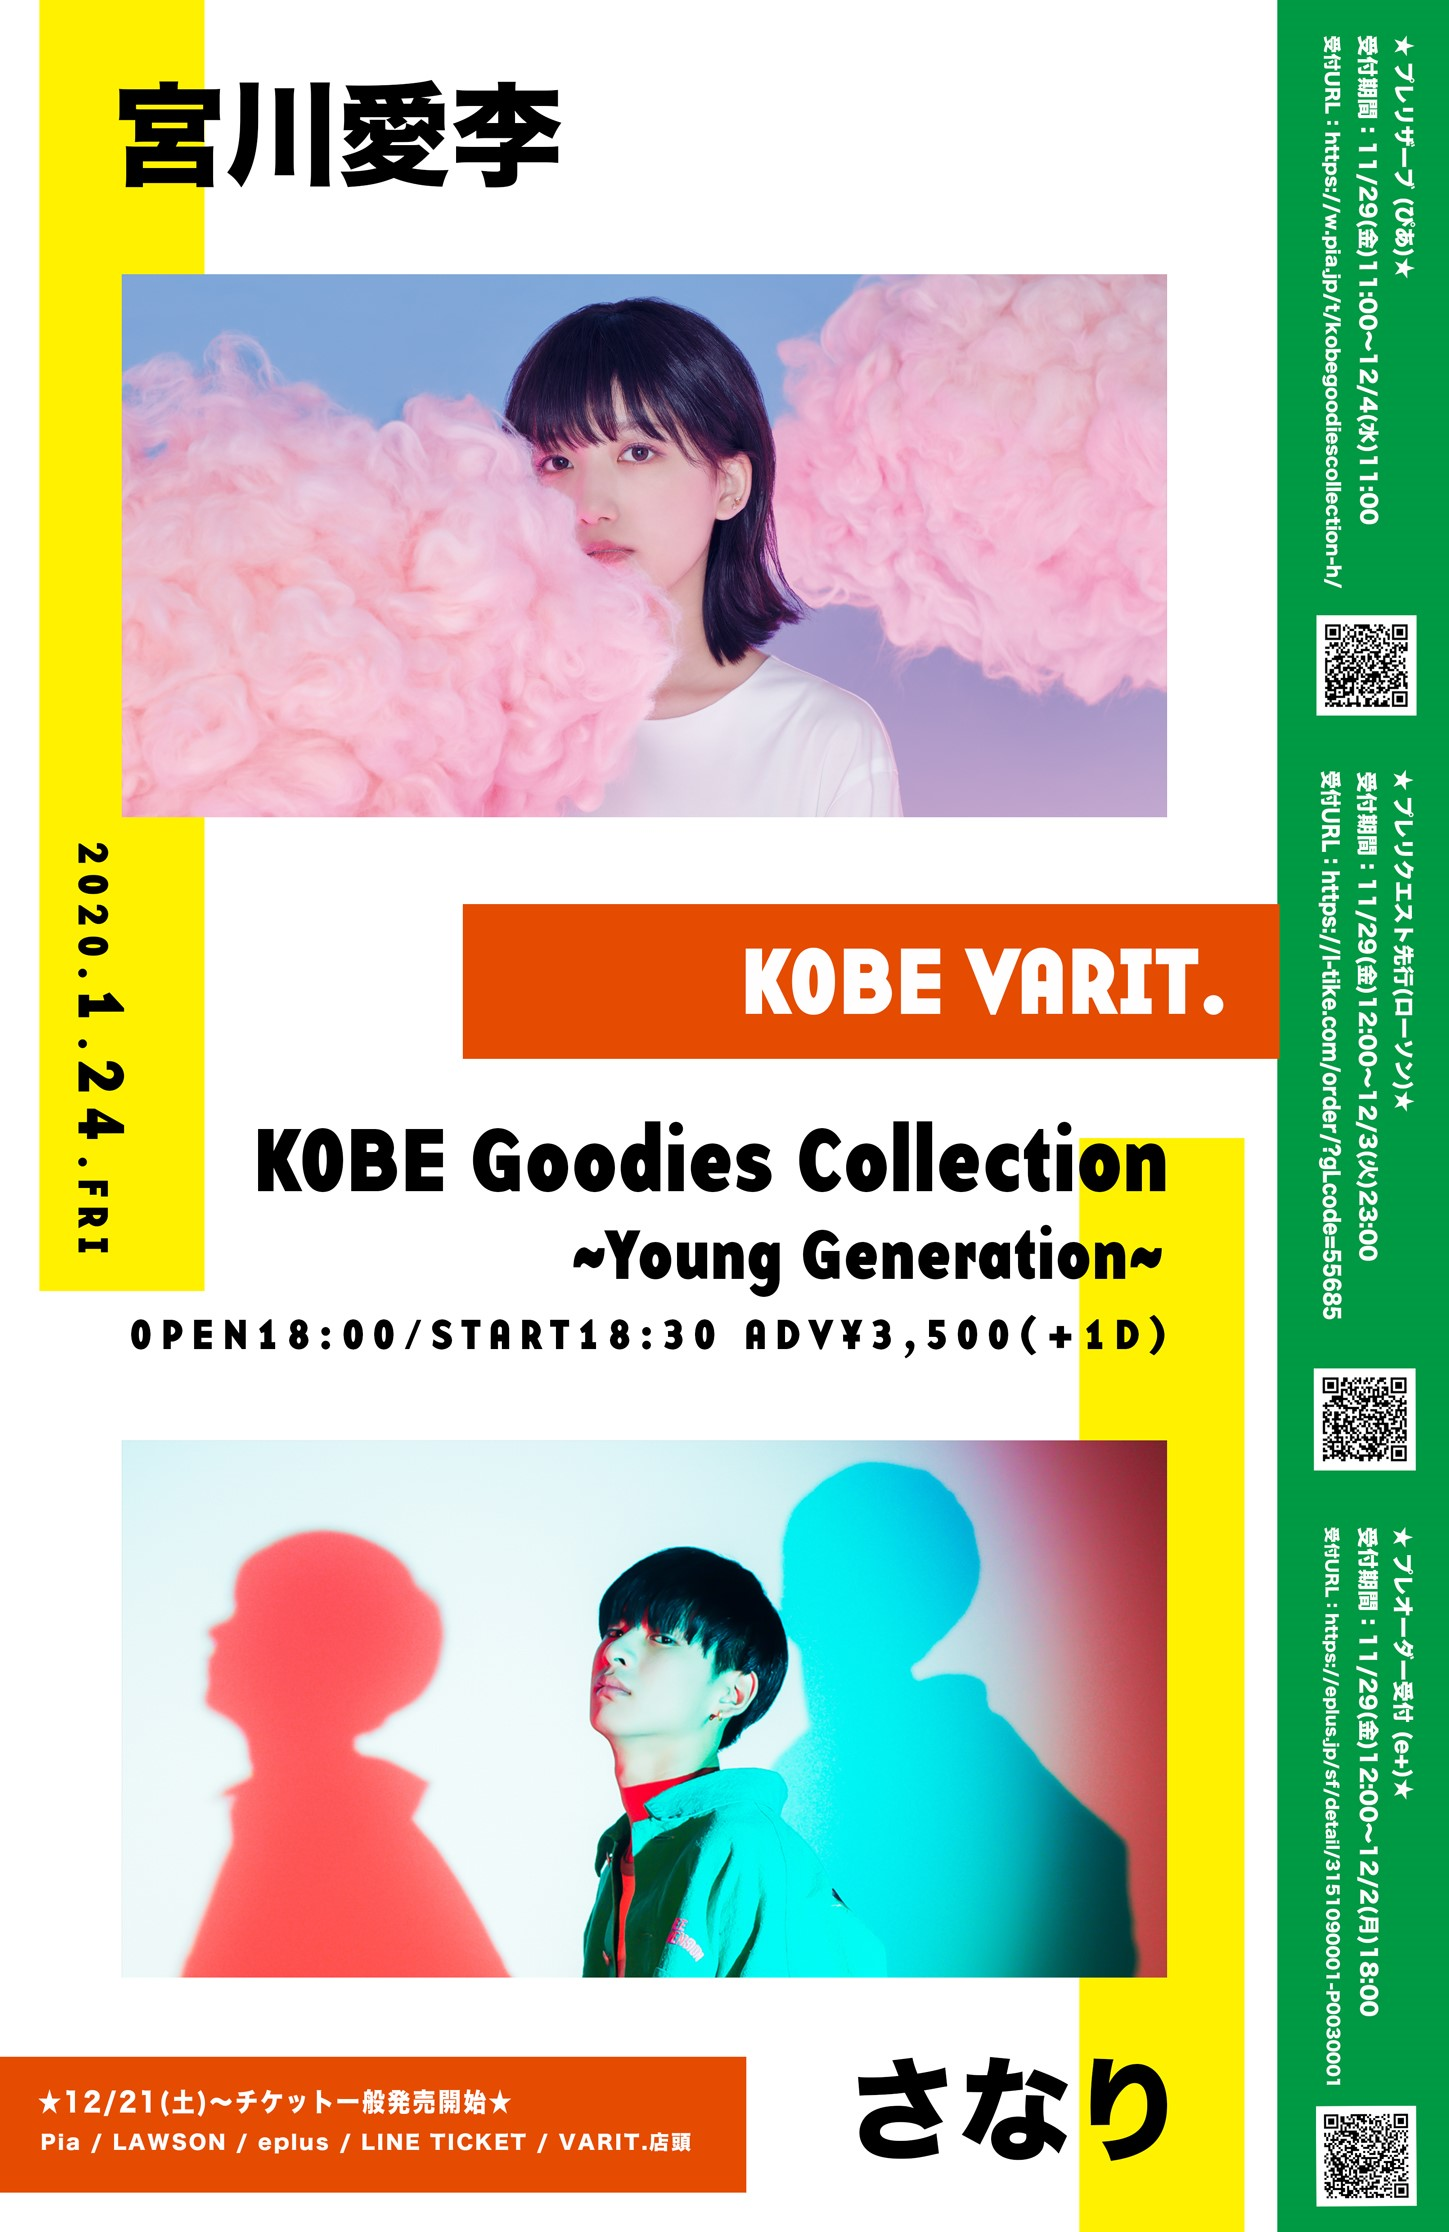 KOBE Goodies Collection ~Young Generation~ フライヤー